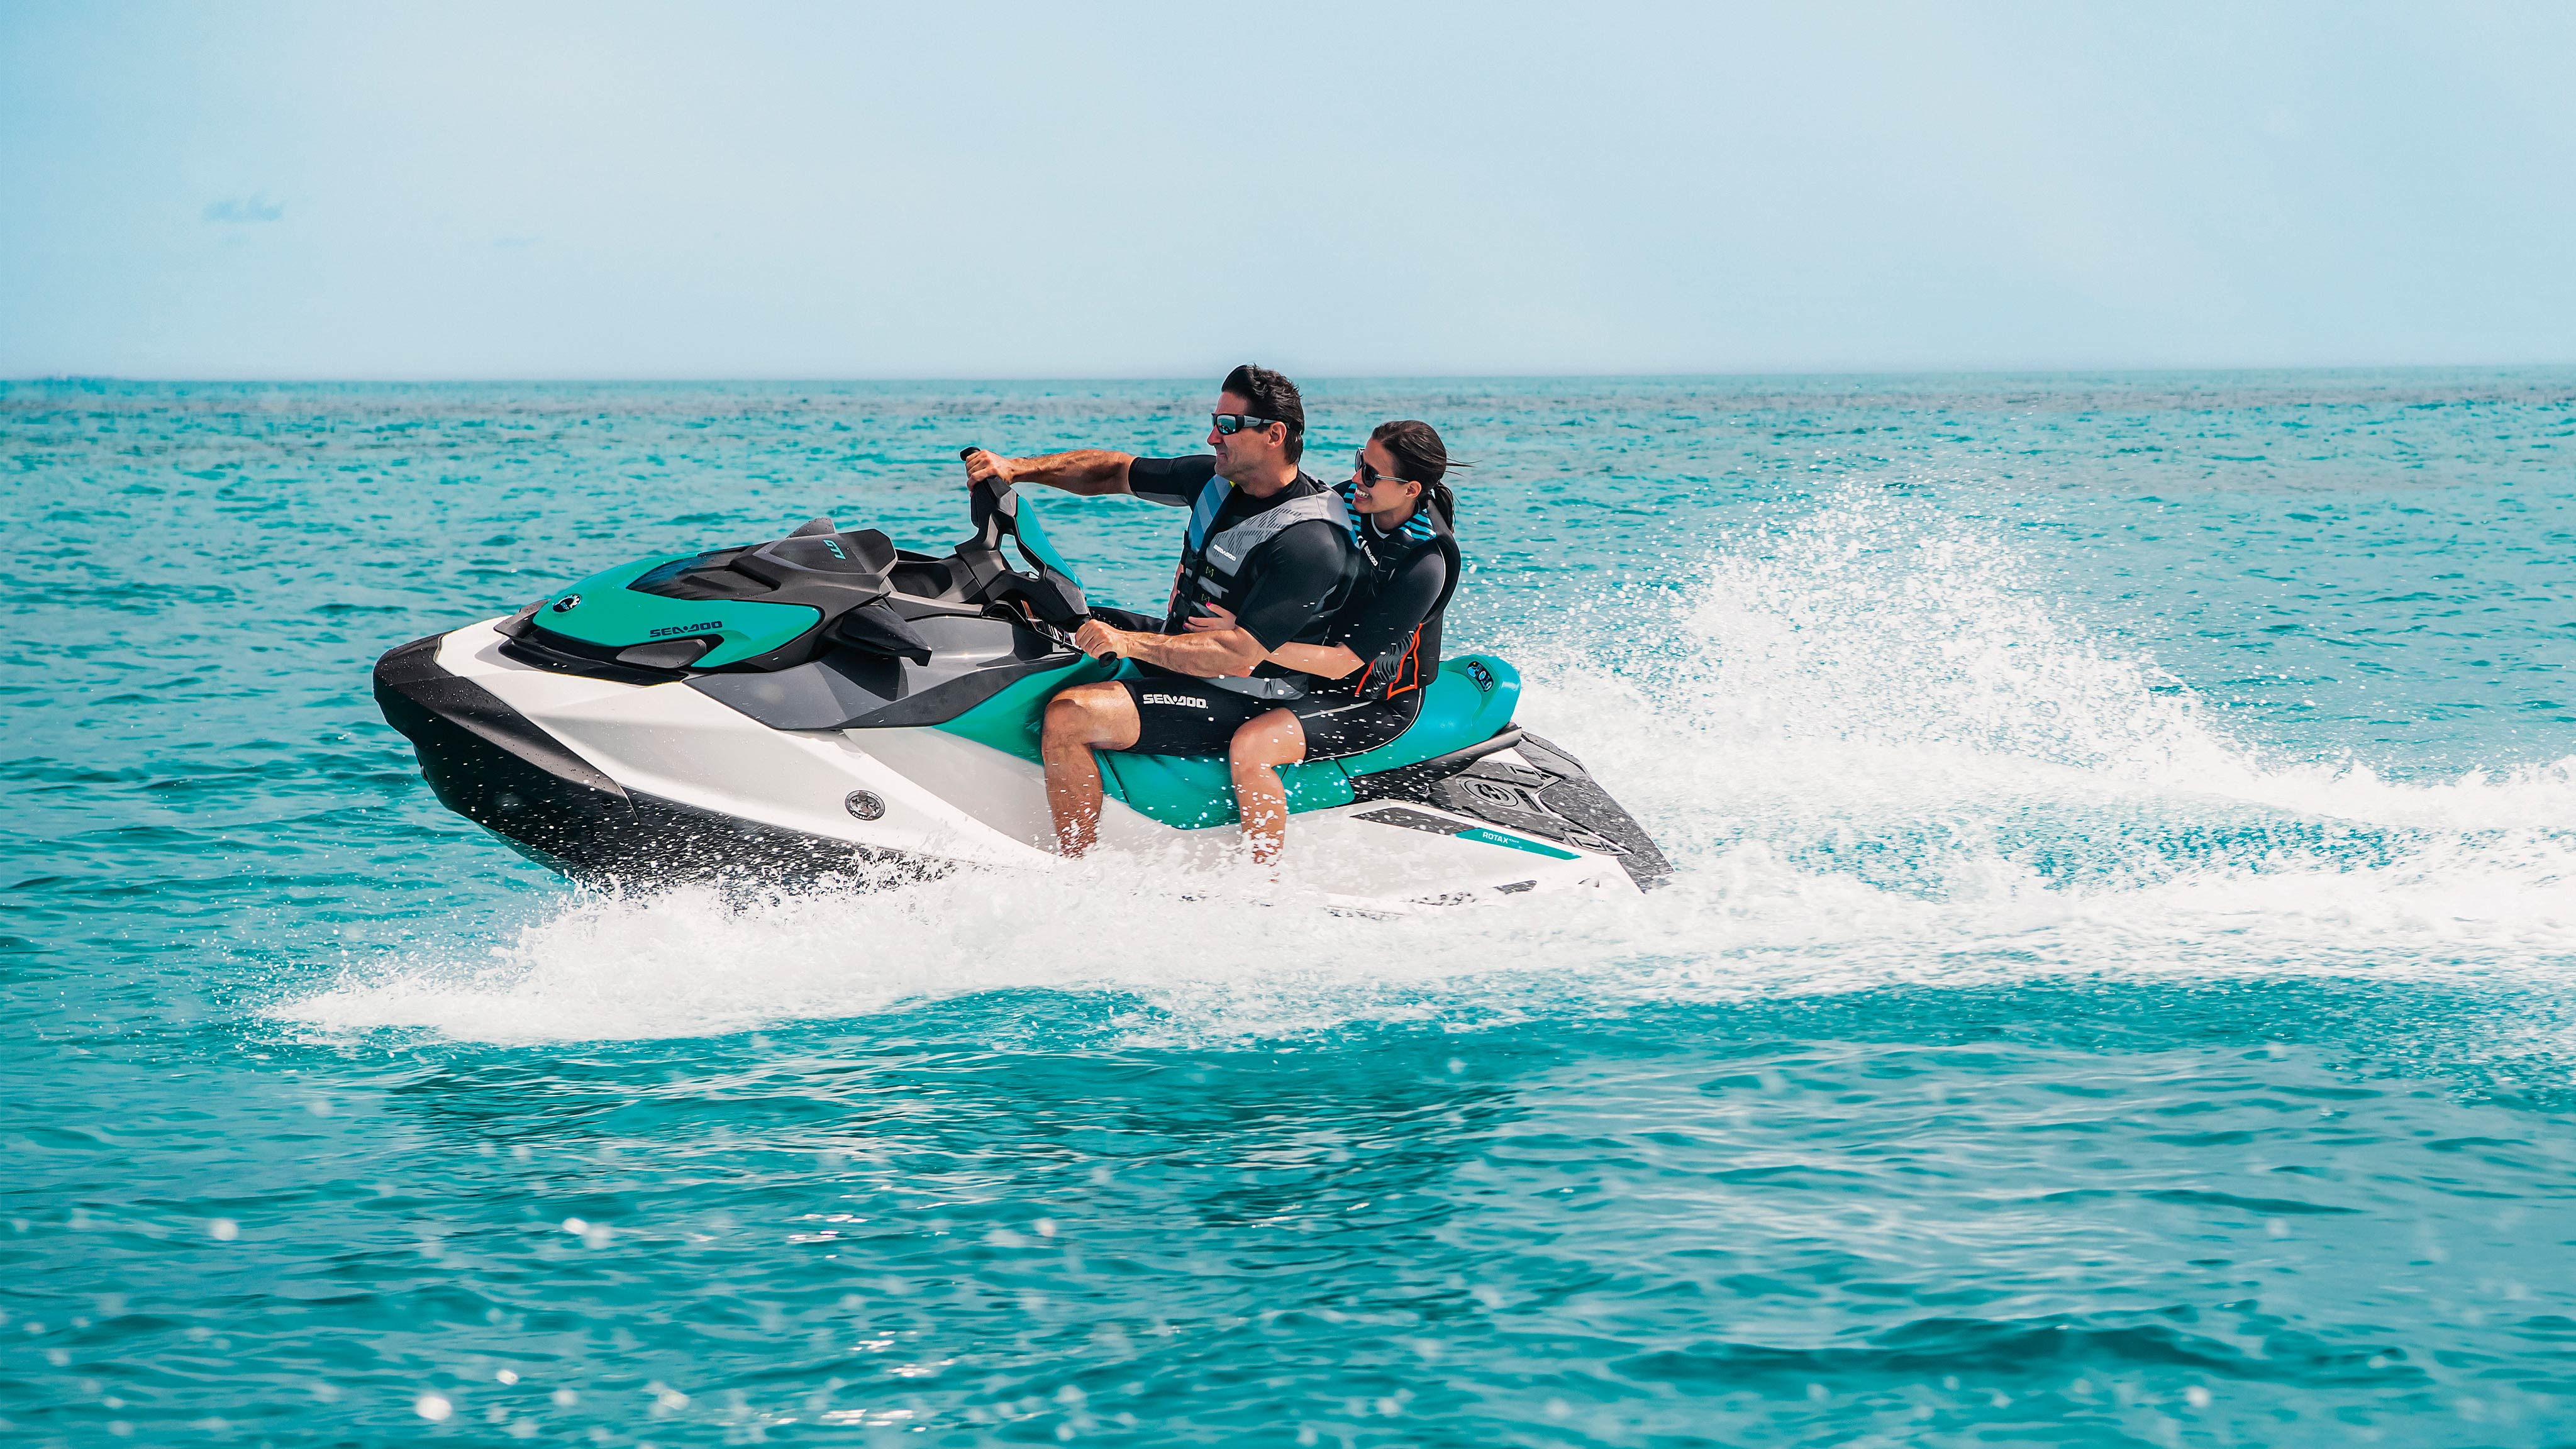 A man and a woman riding a Sea-Doo GTI